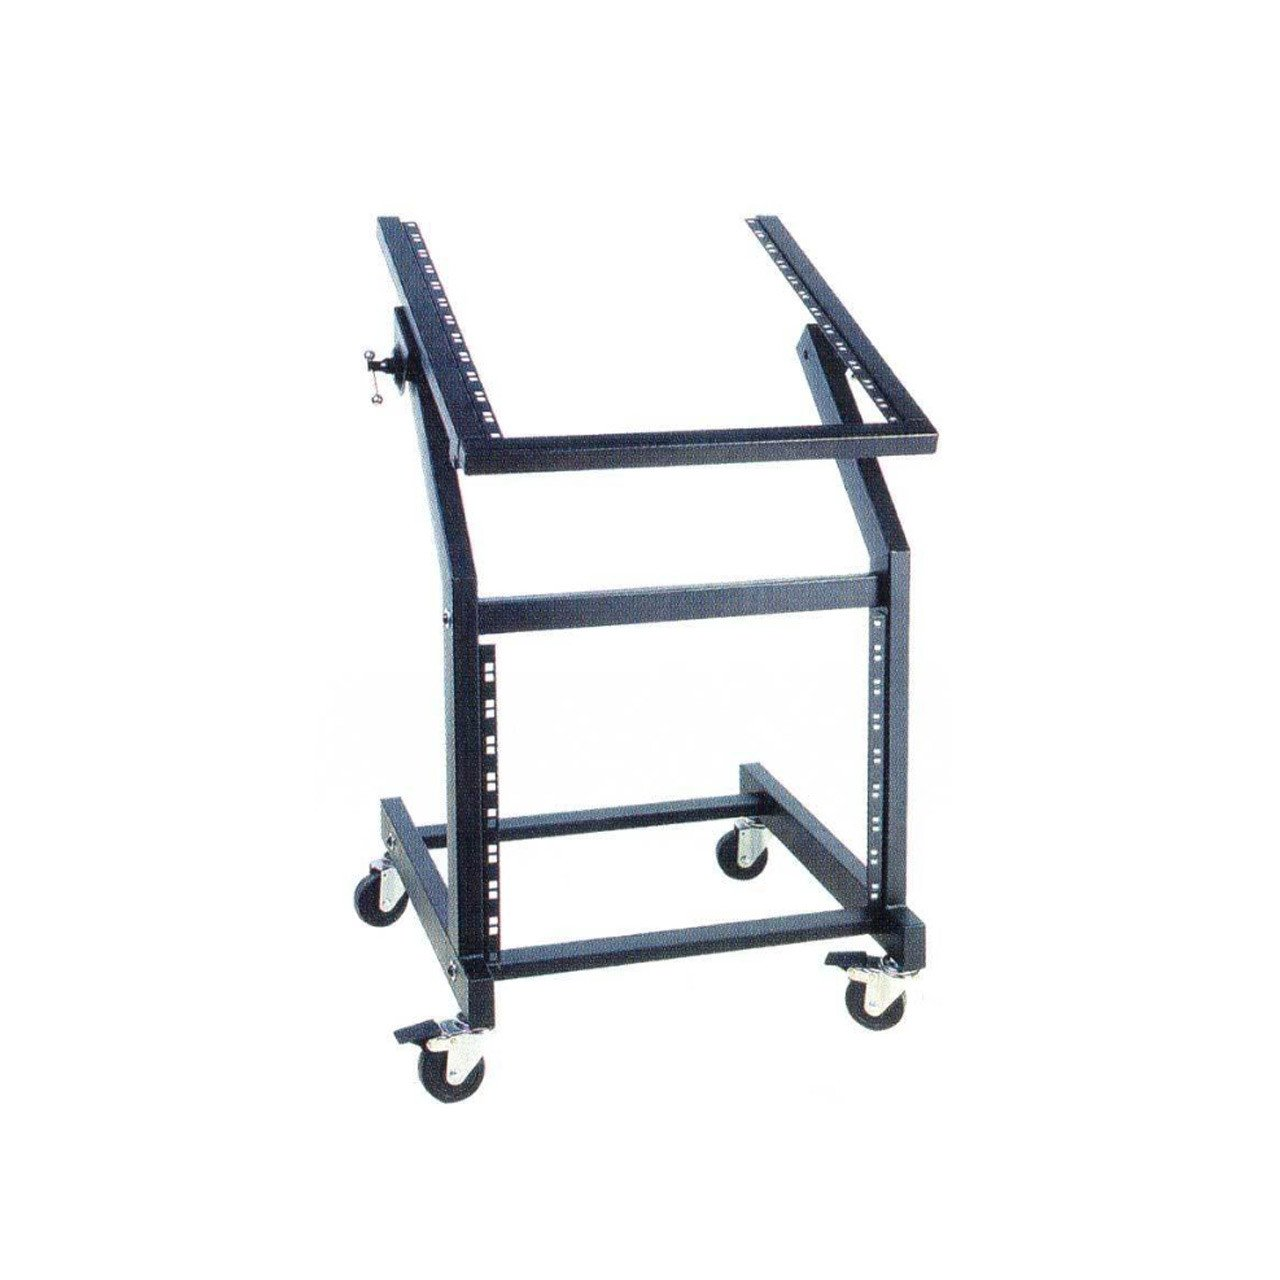 Outboard Accessories - UXL Mixer Rack 12RU DLX Rackmount Stand W/Casters